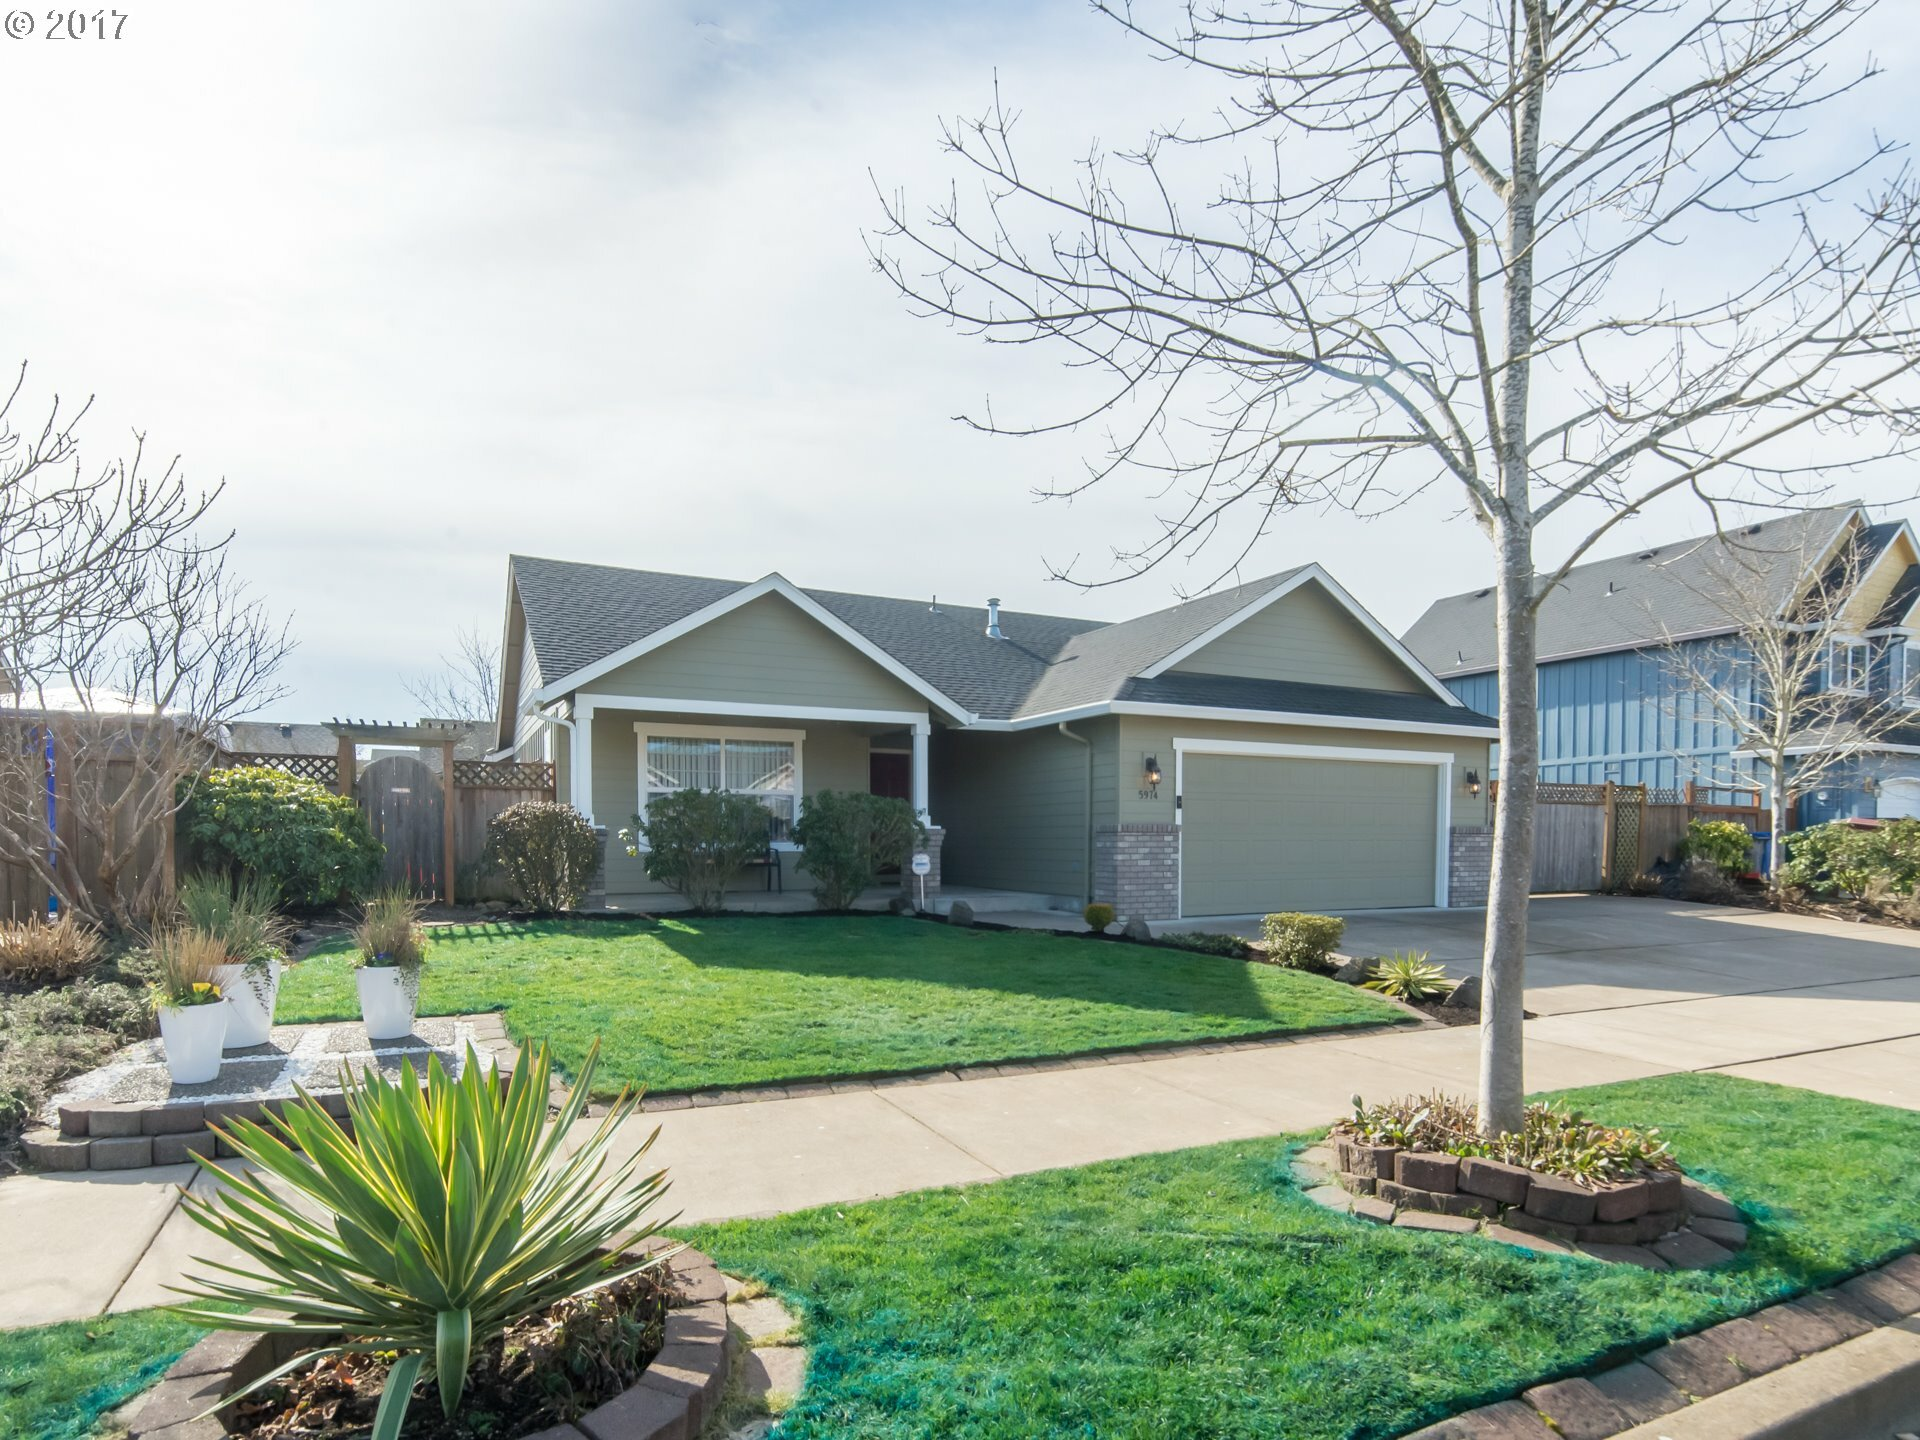 5974 Latour Ln, Eugene, OR - USA (photo 2)